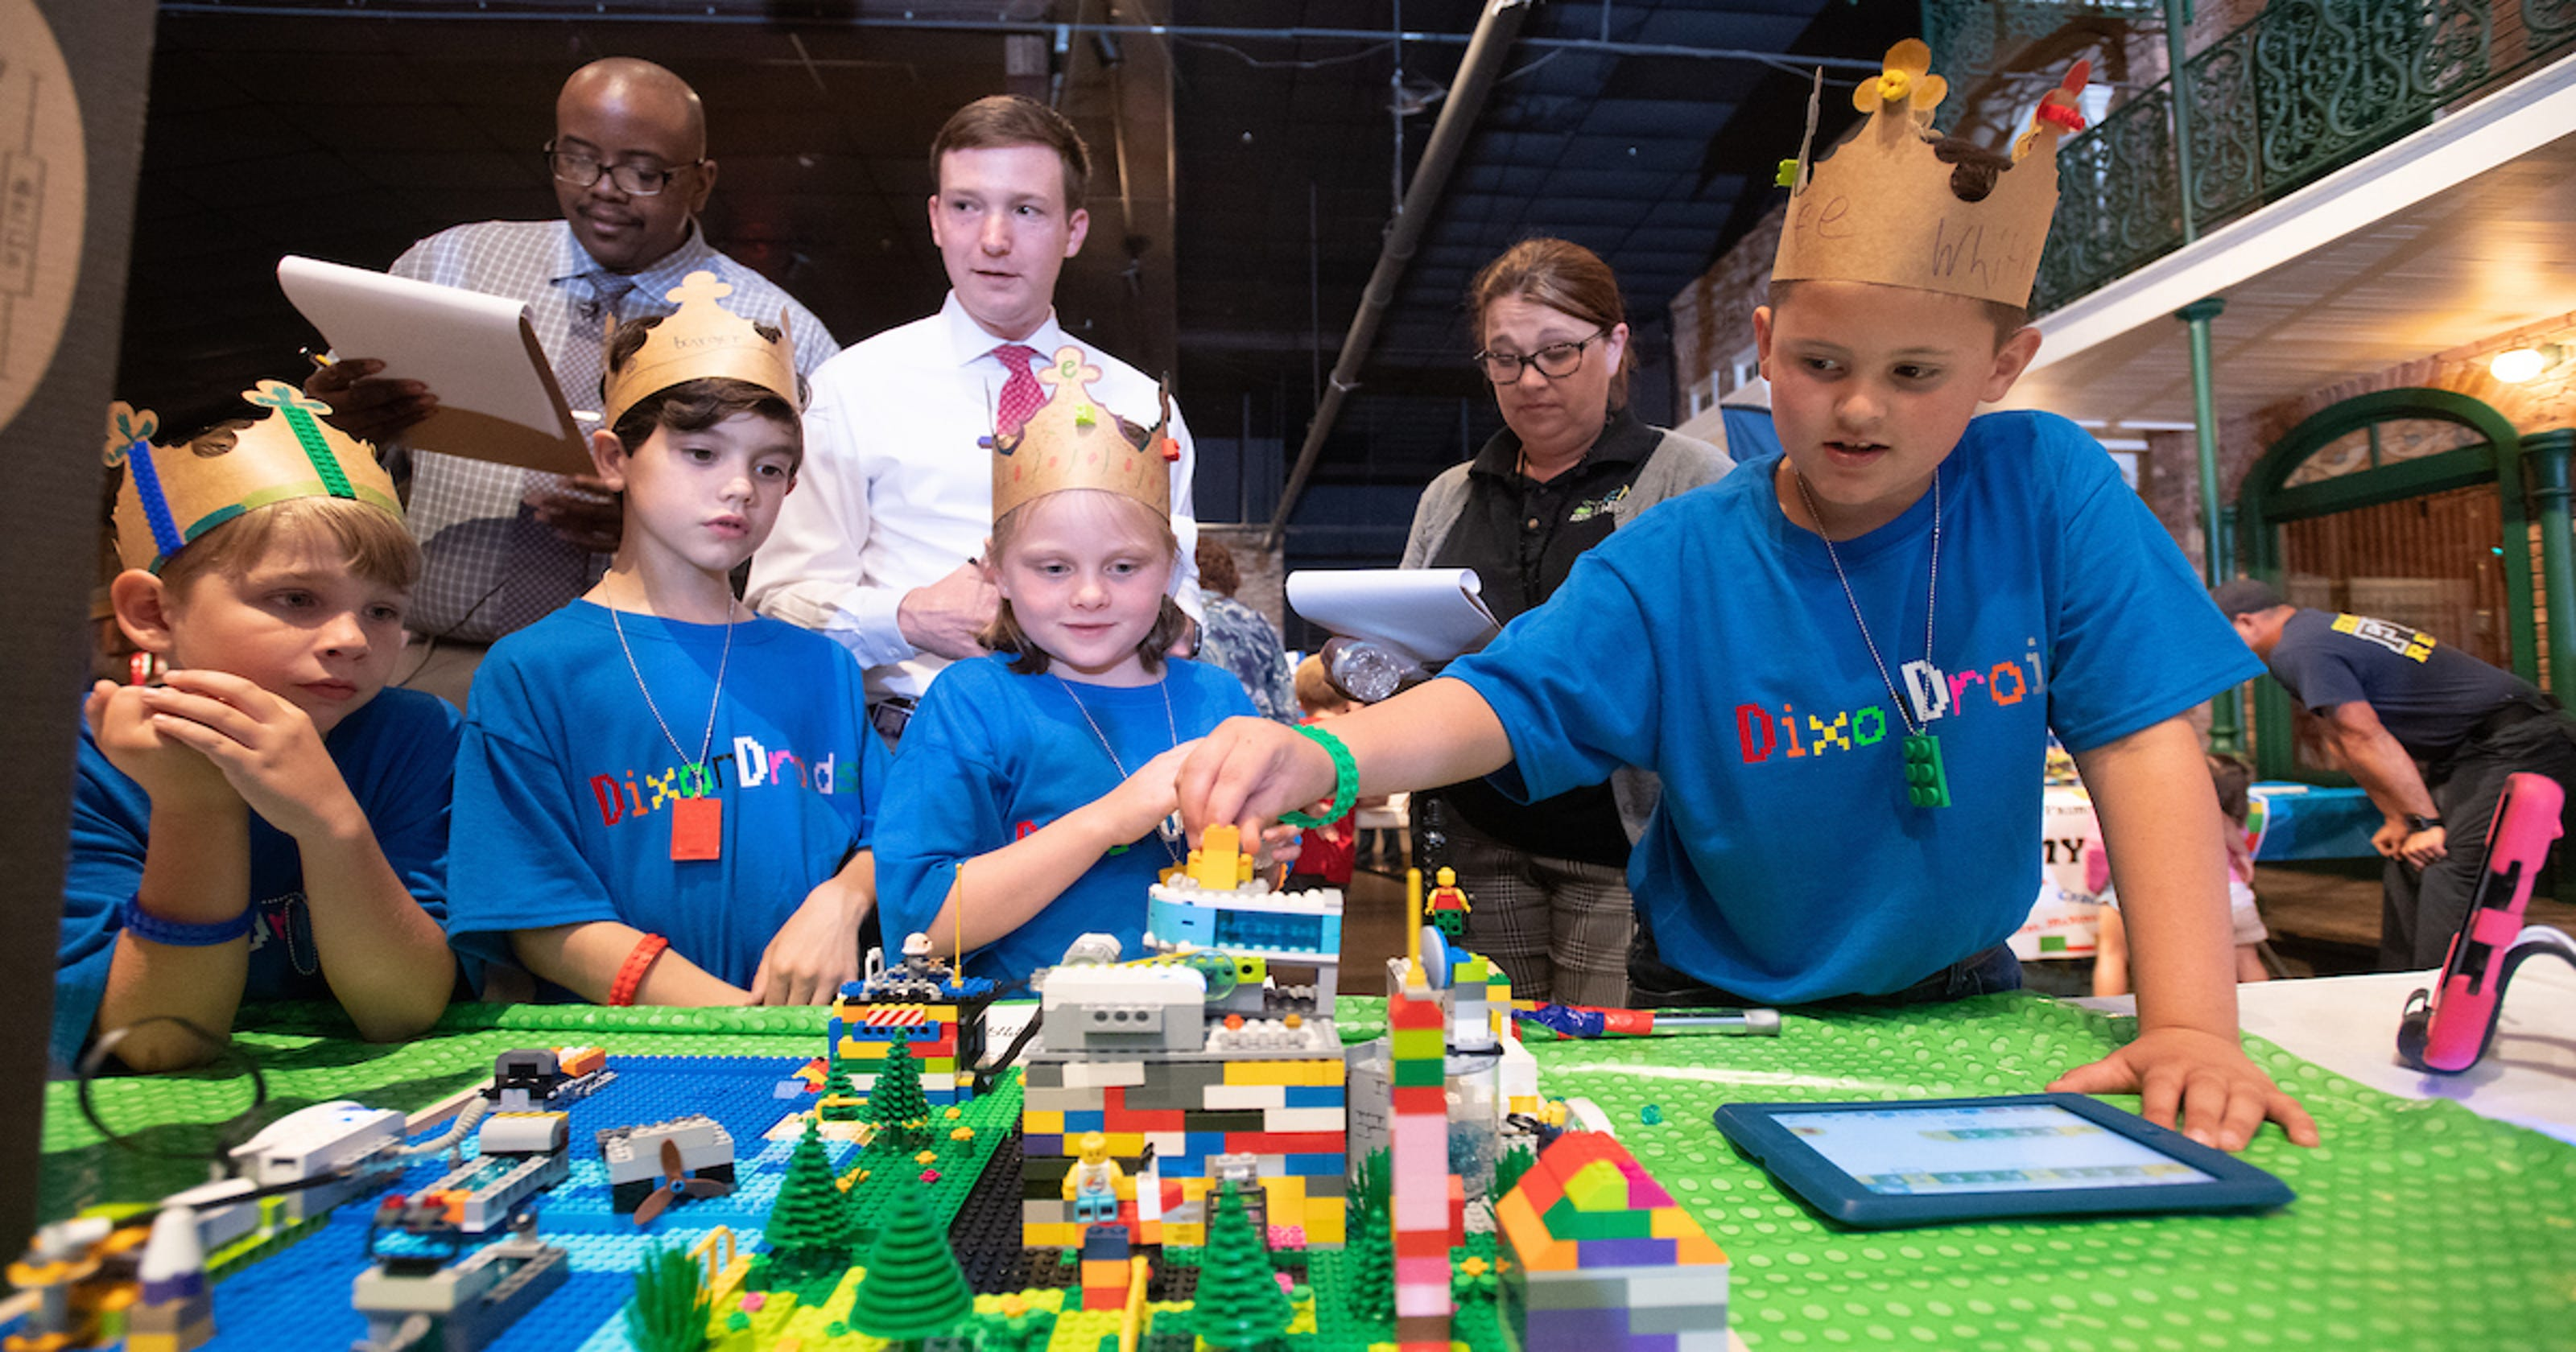 Escambia County FIRST LEGO League Junior Expo: Kids show off